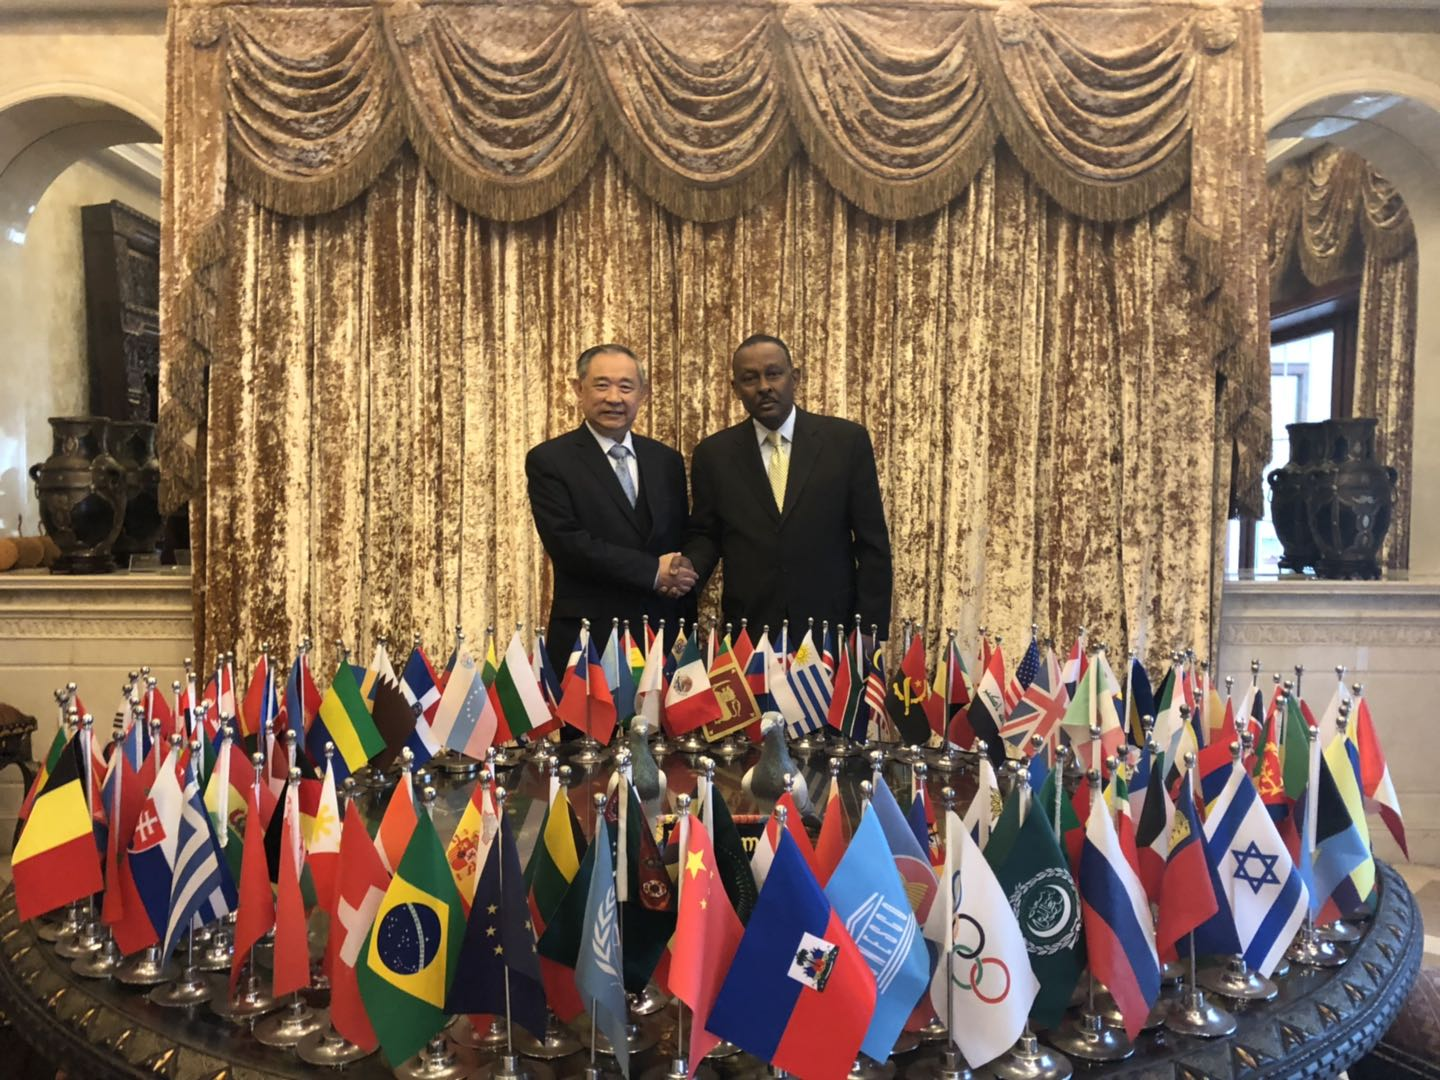 Guy G. Lamothe, Permanent Representative of Commercial Development Office to People's Republic of China visited Peace Garden